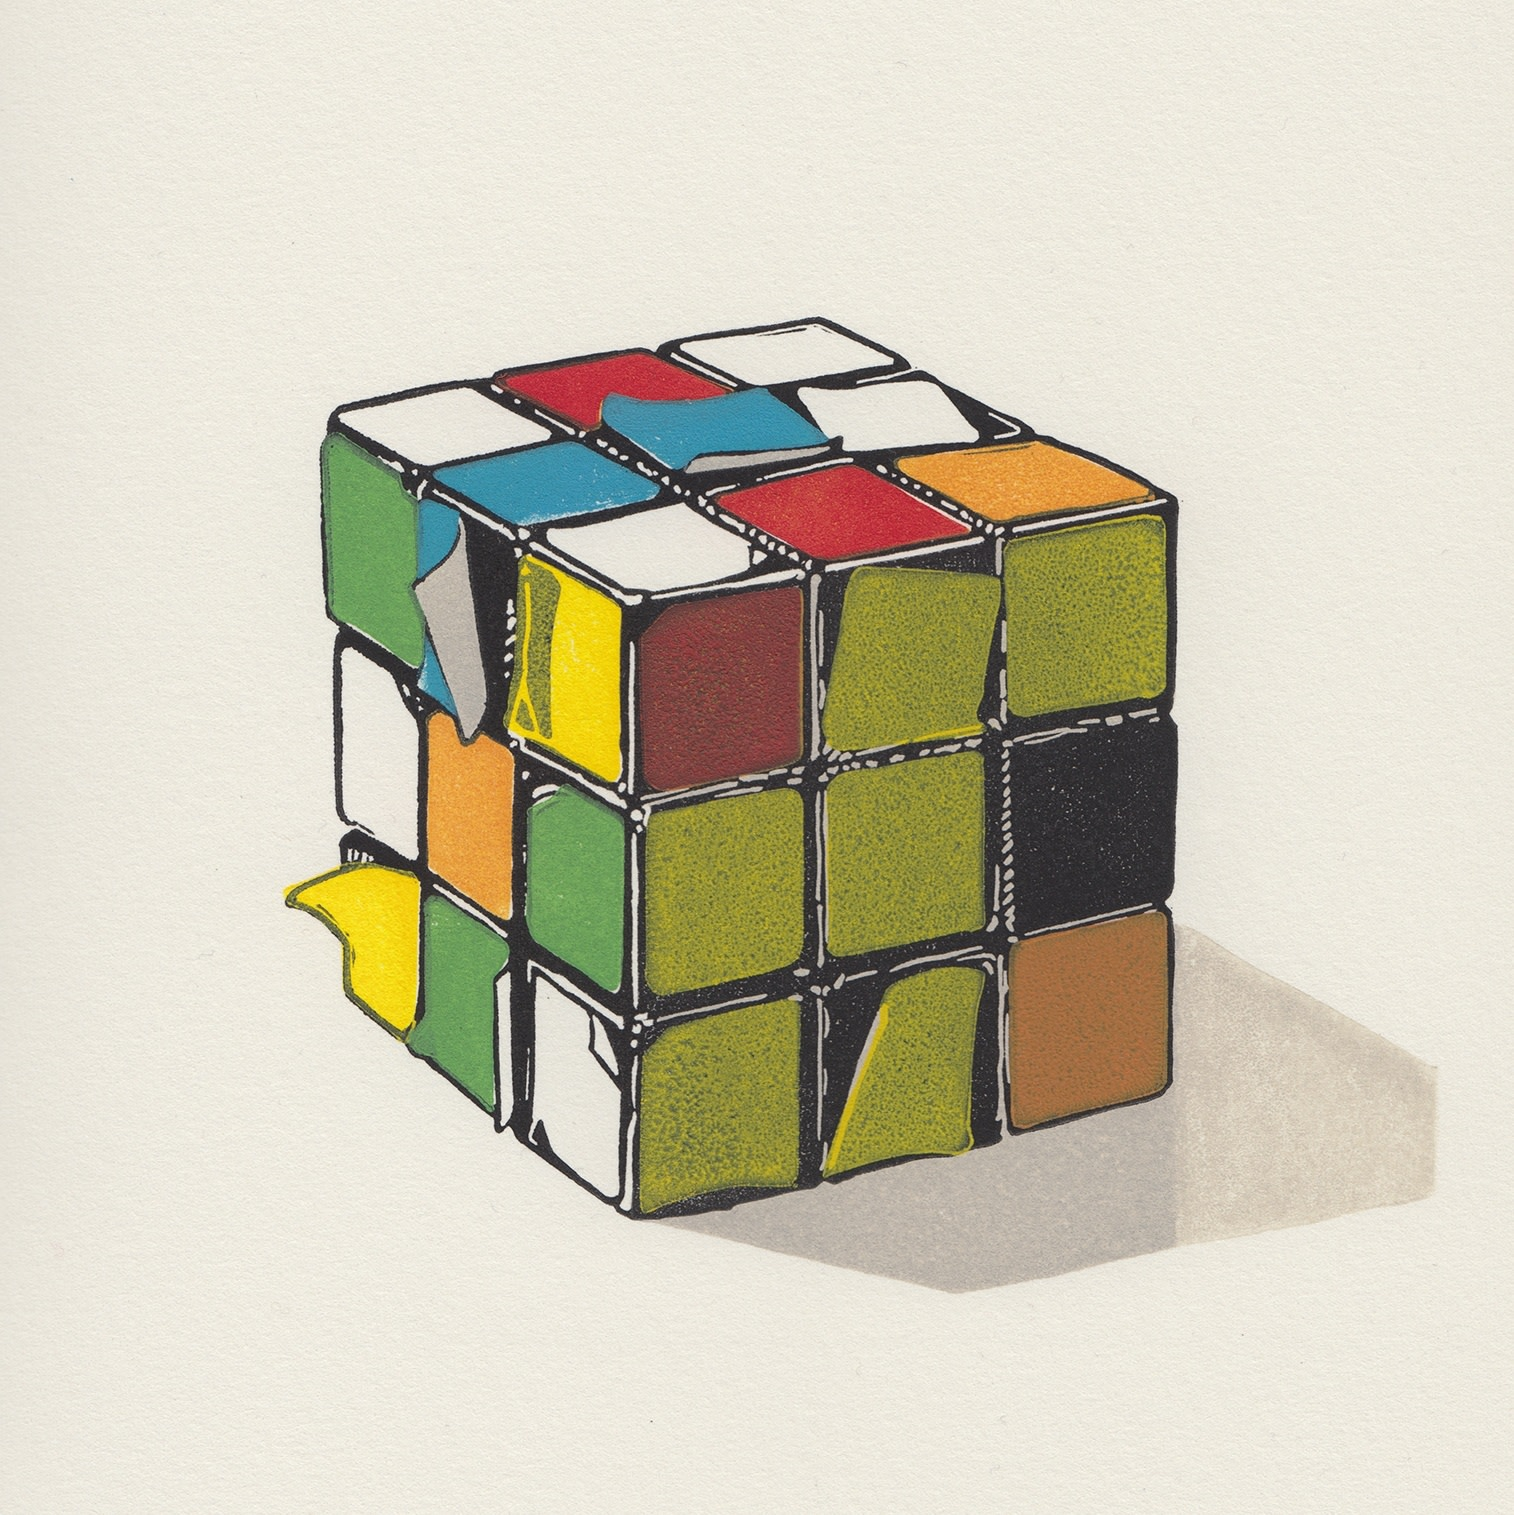 "<span class=""link fancybox-details-link""><a href=""/exhibitions/17/works/image_standalone774/"">View Detail Page</a></span><p><strong>Ioana Pioaru</strong></p><p>Rubik's Cube Has Seen Better Days</p><p>linocut, ed of 40</p><p>30 x 30cm</p><p>£400 framed</p><p>£300 unframed</p>"